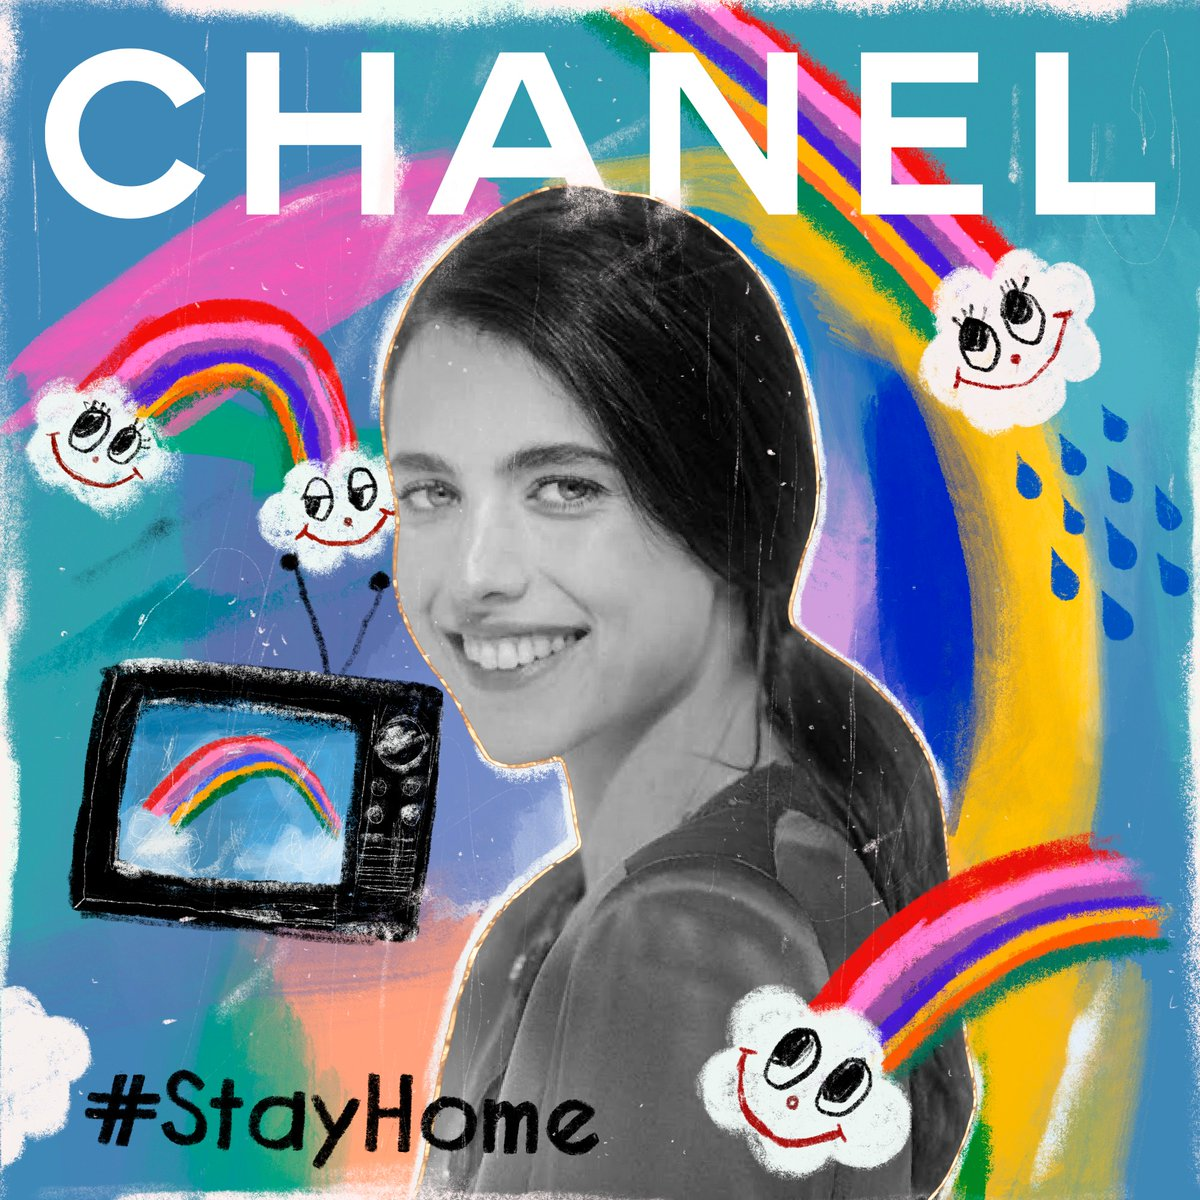 Margaret Qualley selected some of her favourite tracks in a new playlist for CHANEL on Apple Music. https://t.co/3nQ663zNQc #TheSoundofCHANEL  @AppleMusic https://t.co/WEbjZEjMgx